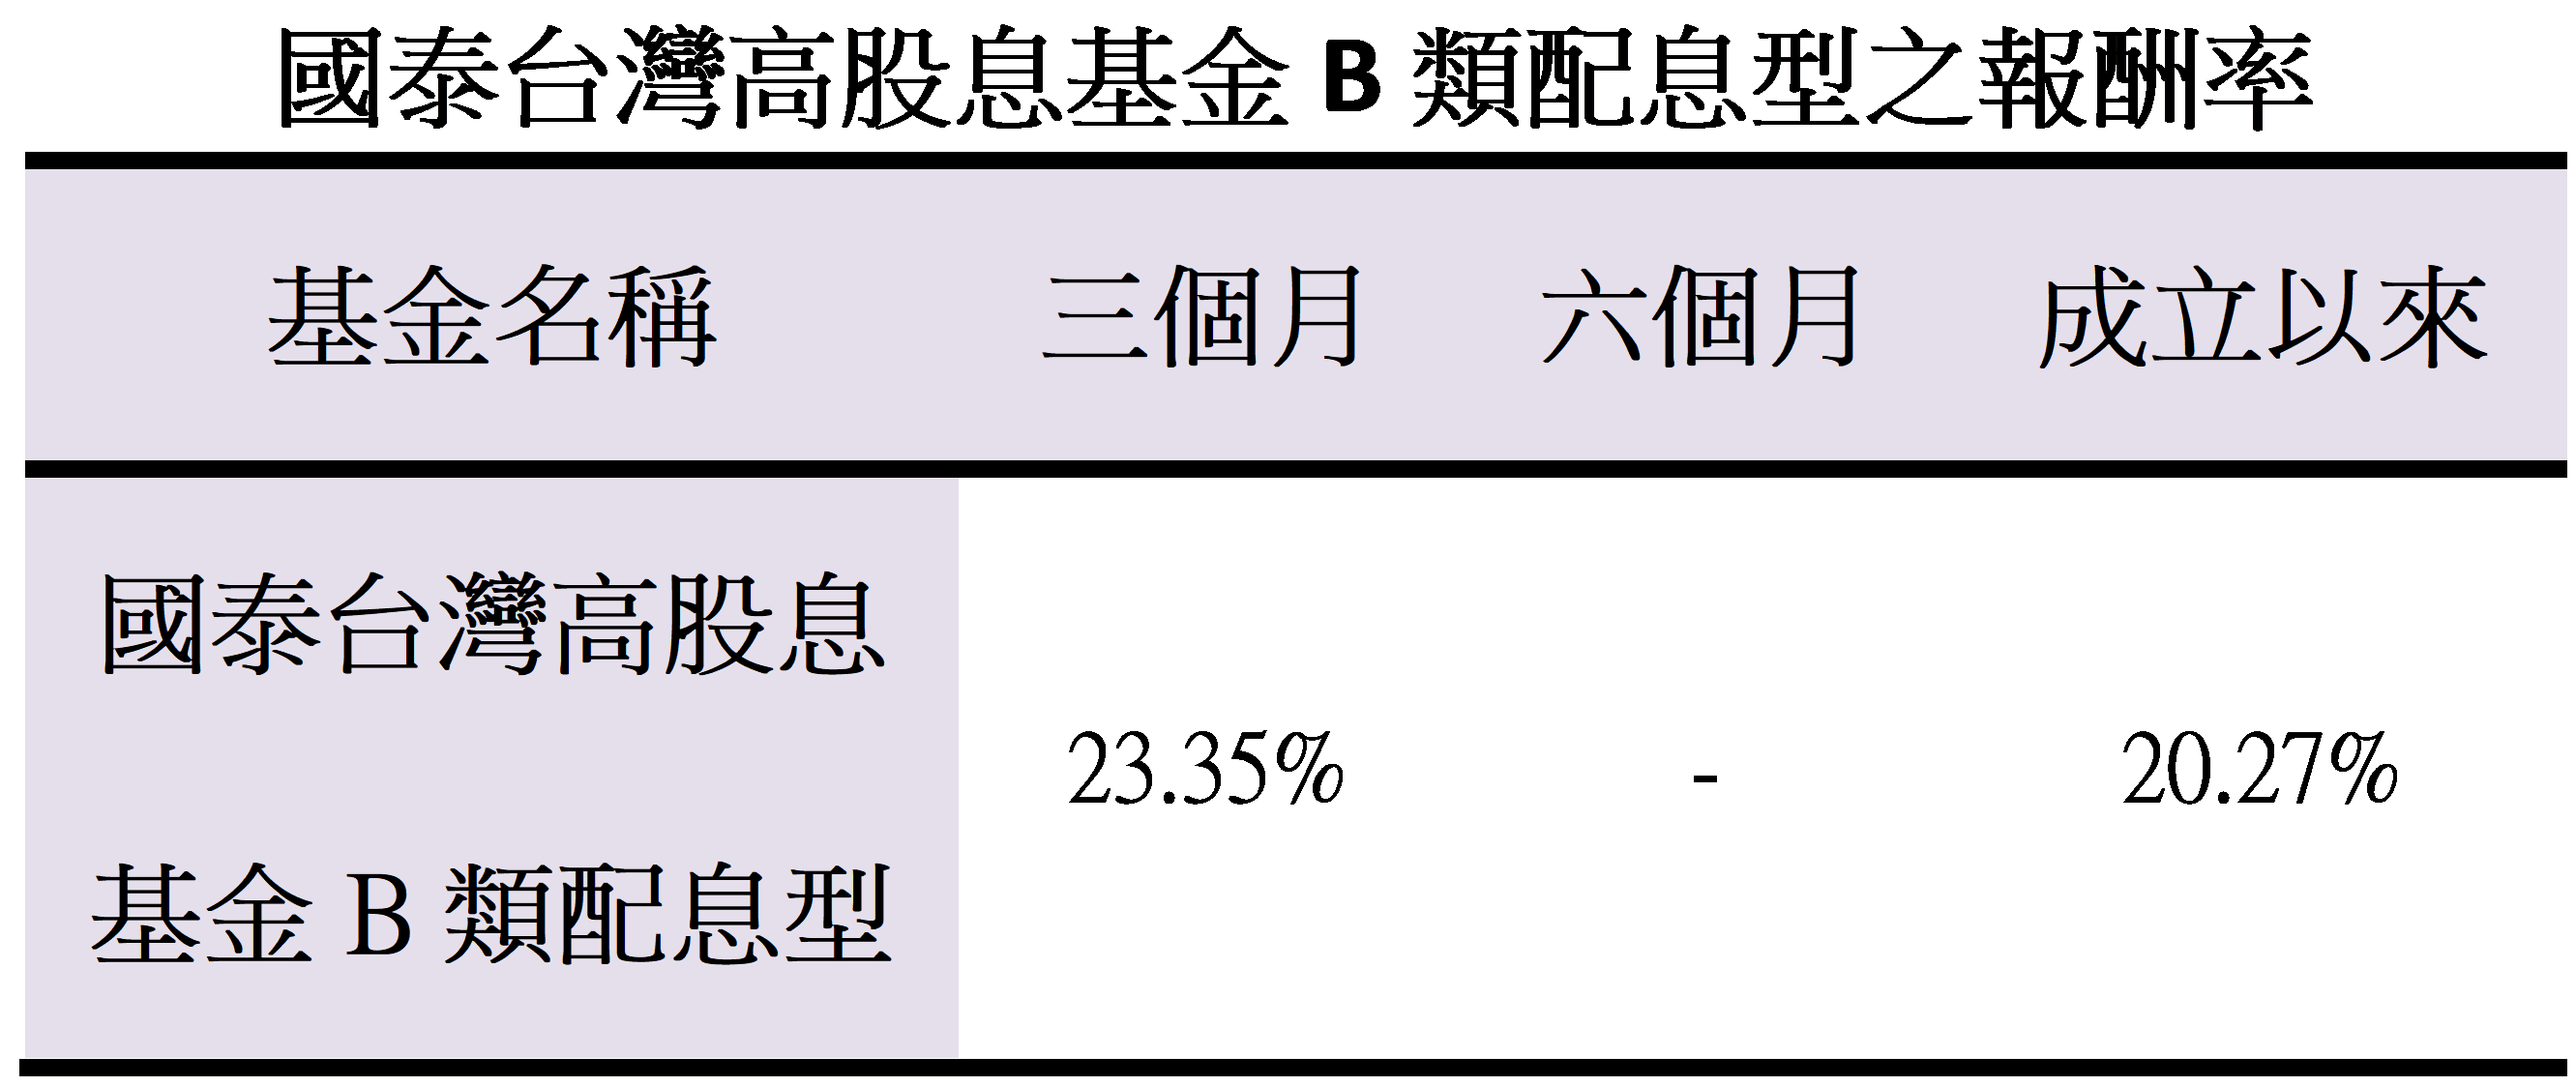 20210119cathay-3.png